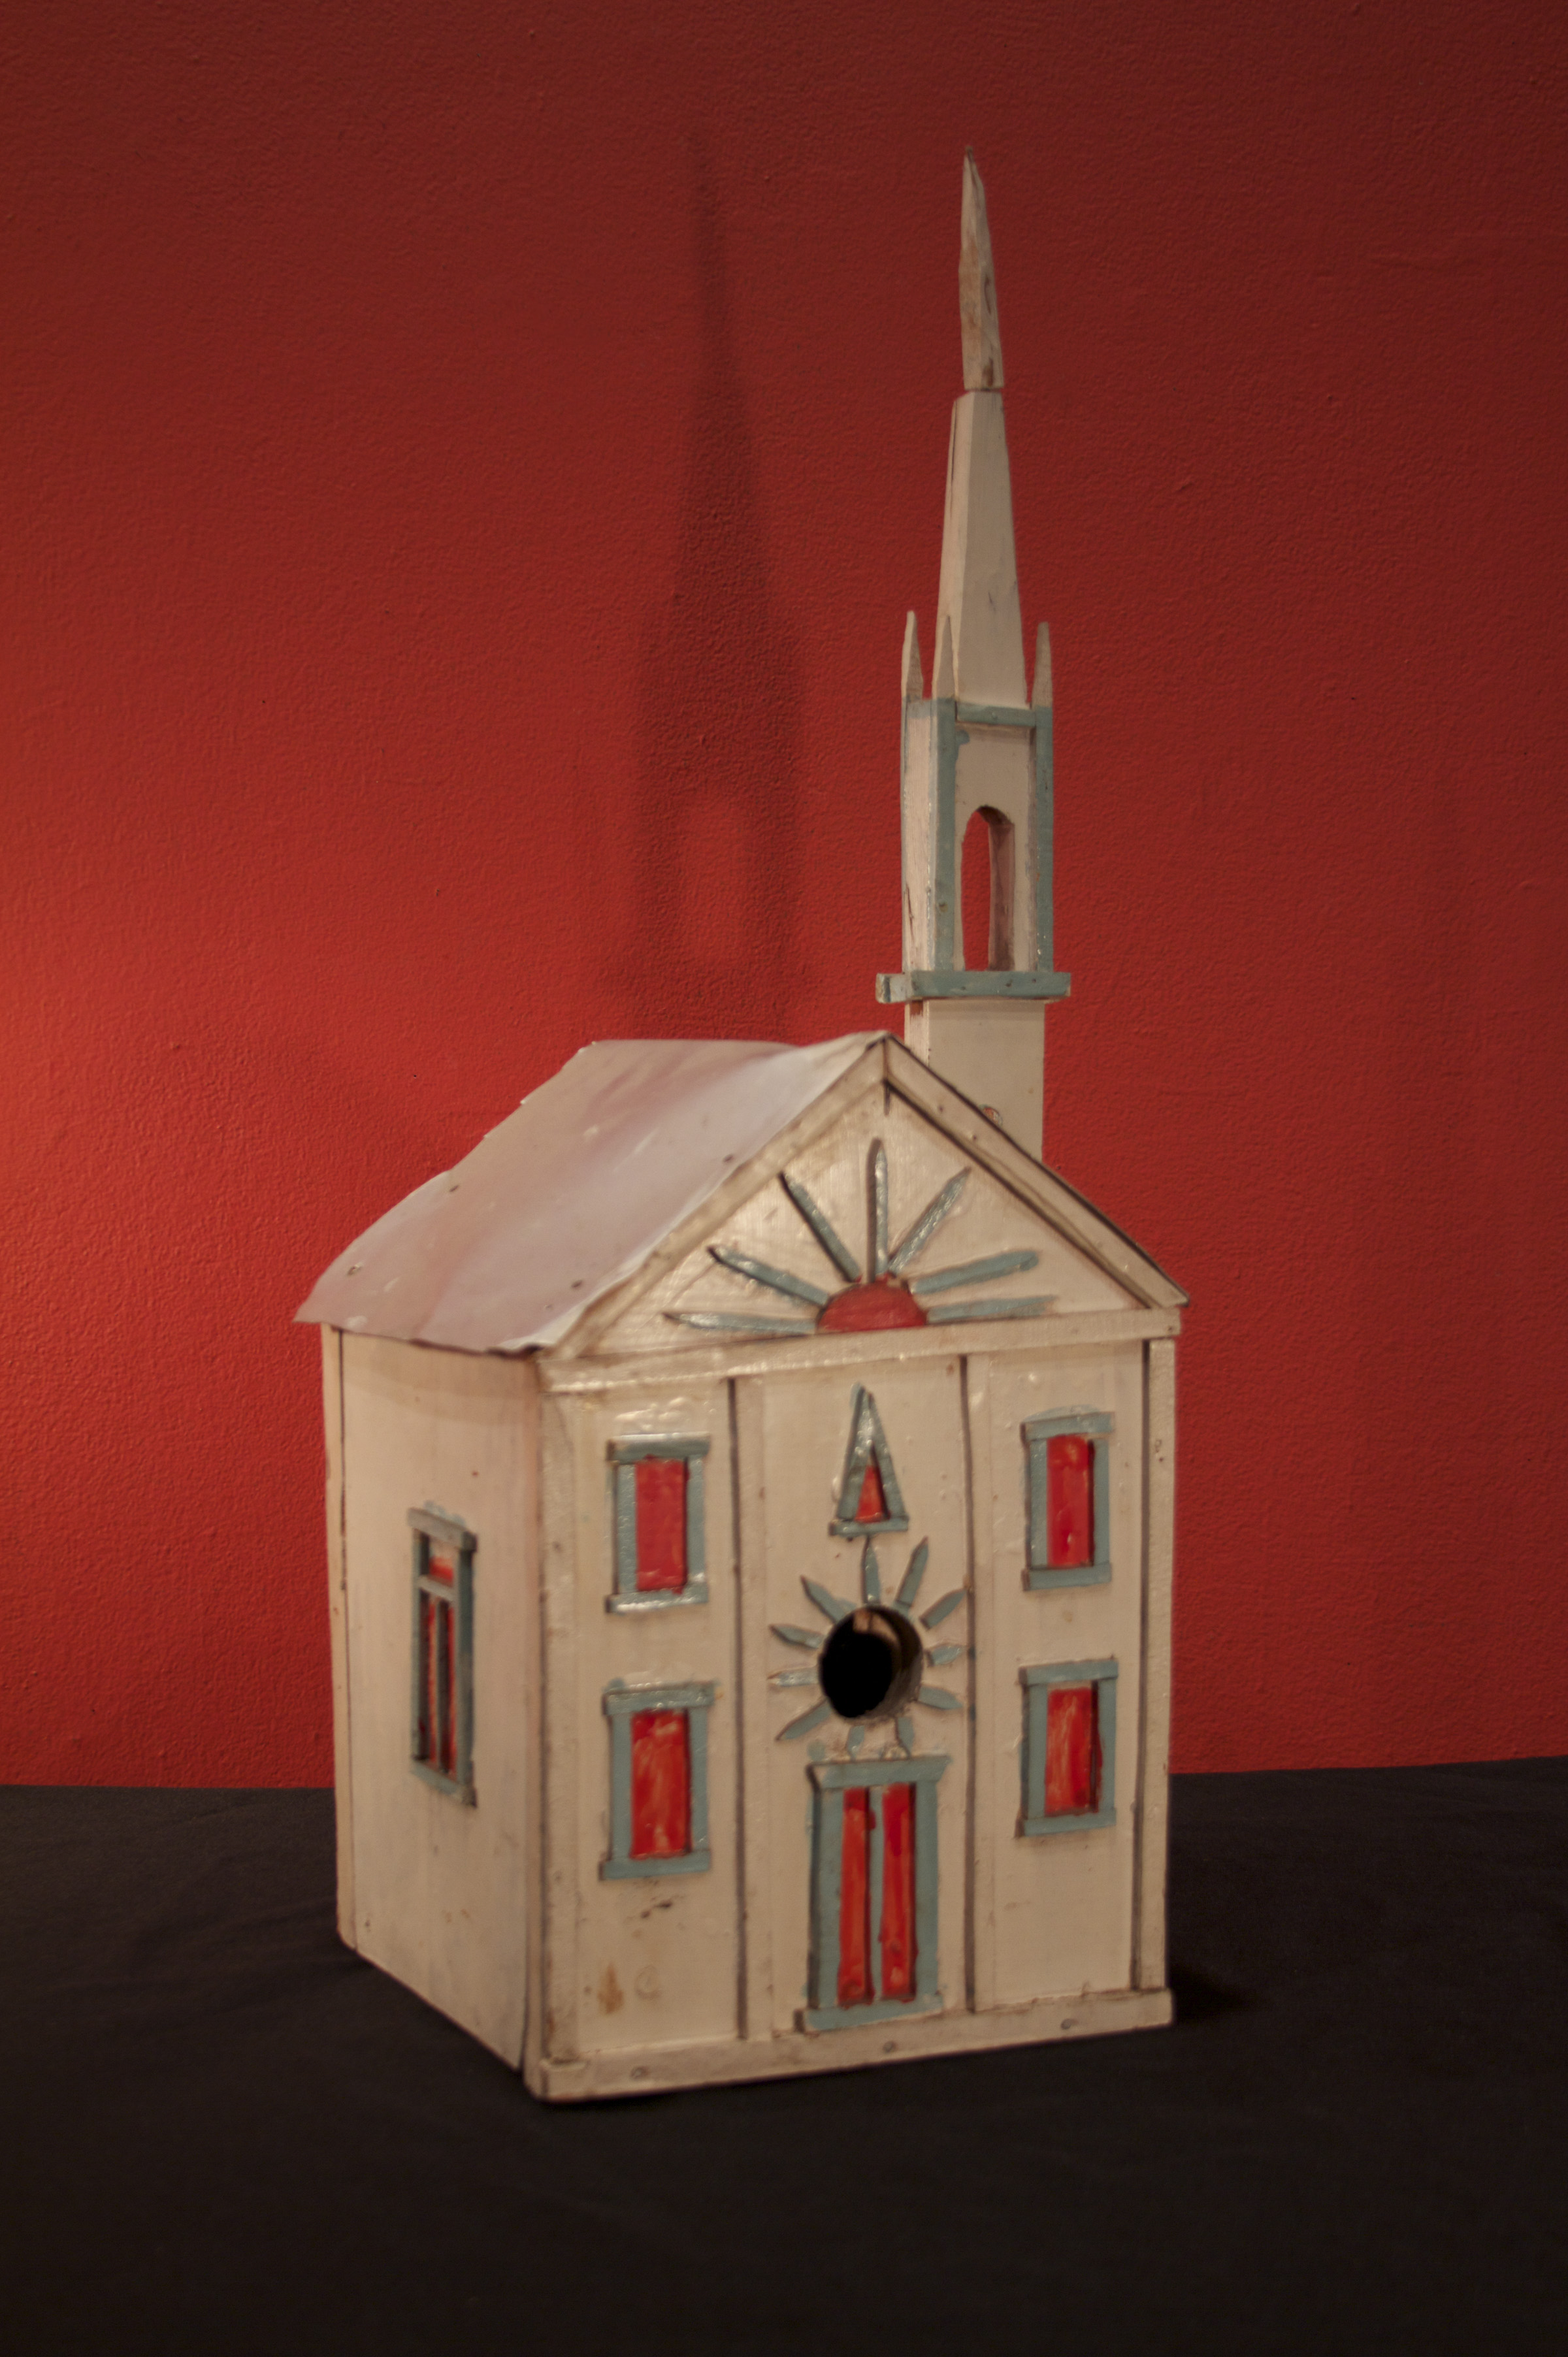 "Aldobrando ""Aldo"" Piacenza (American, 1888-1976).  Single Tower Cathedral , 1960. Wood, paint, and metal, 28 x 13 x 19 in. Intuit: The Center for Intuitive and Outsider Art, gift of Paula Giannini, 2014.4"